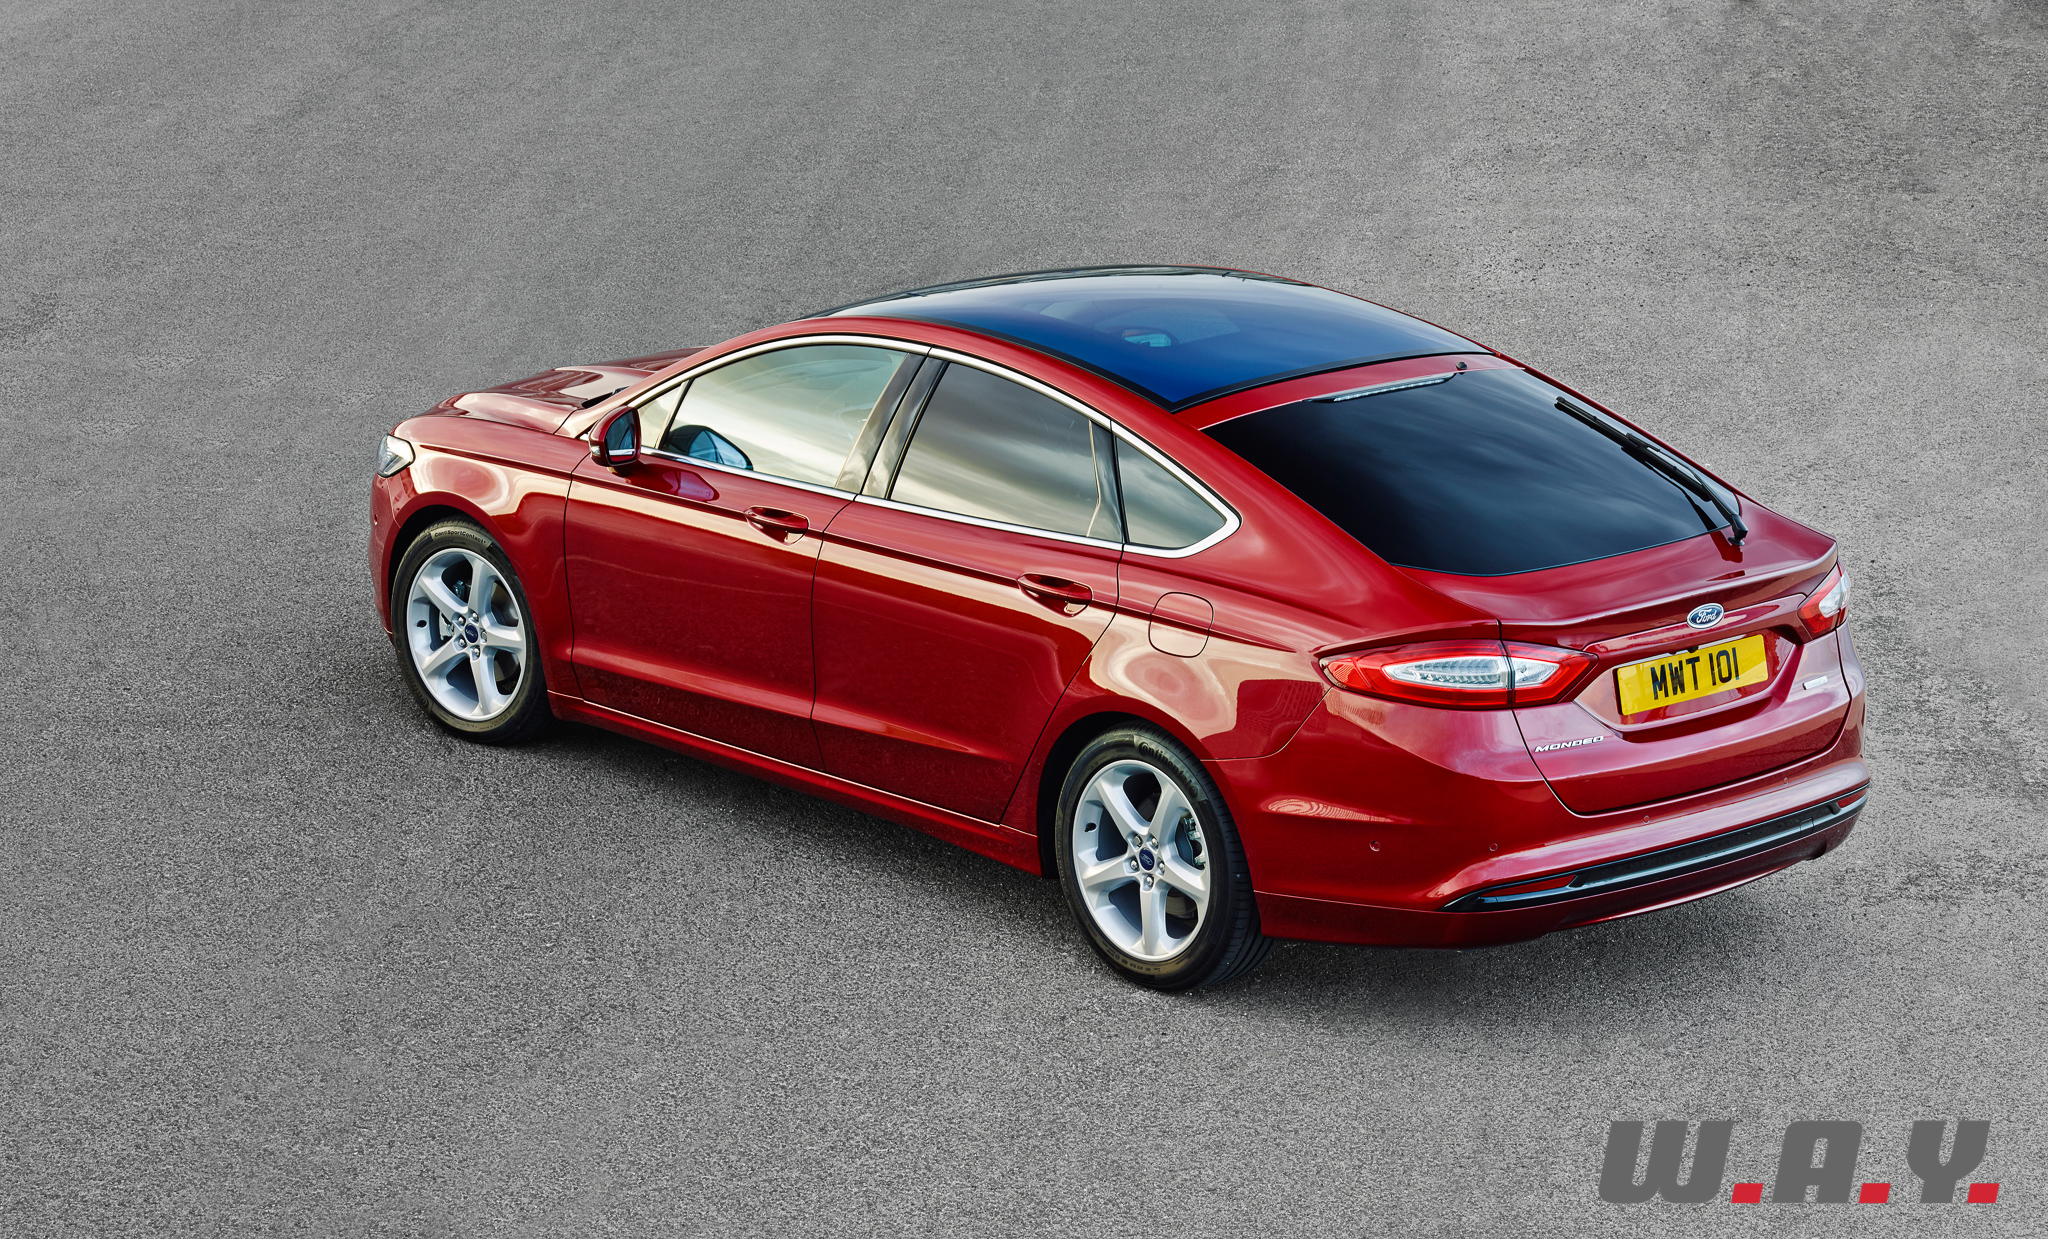 FordMondeo-2